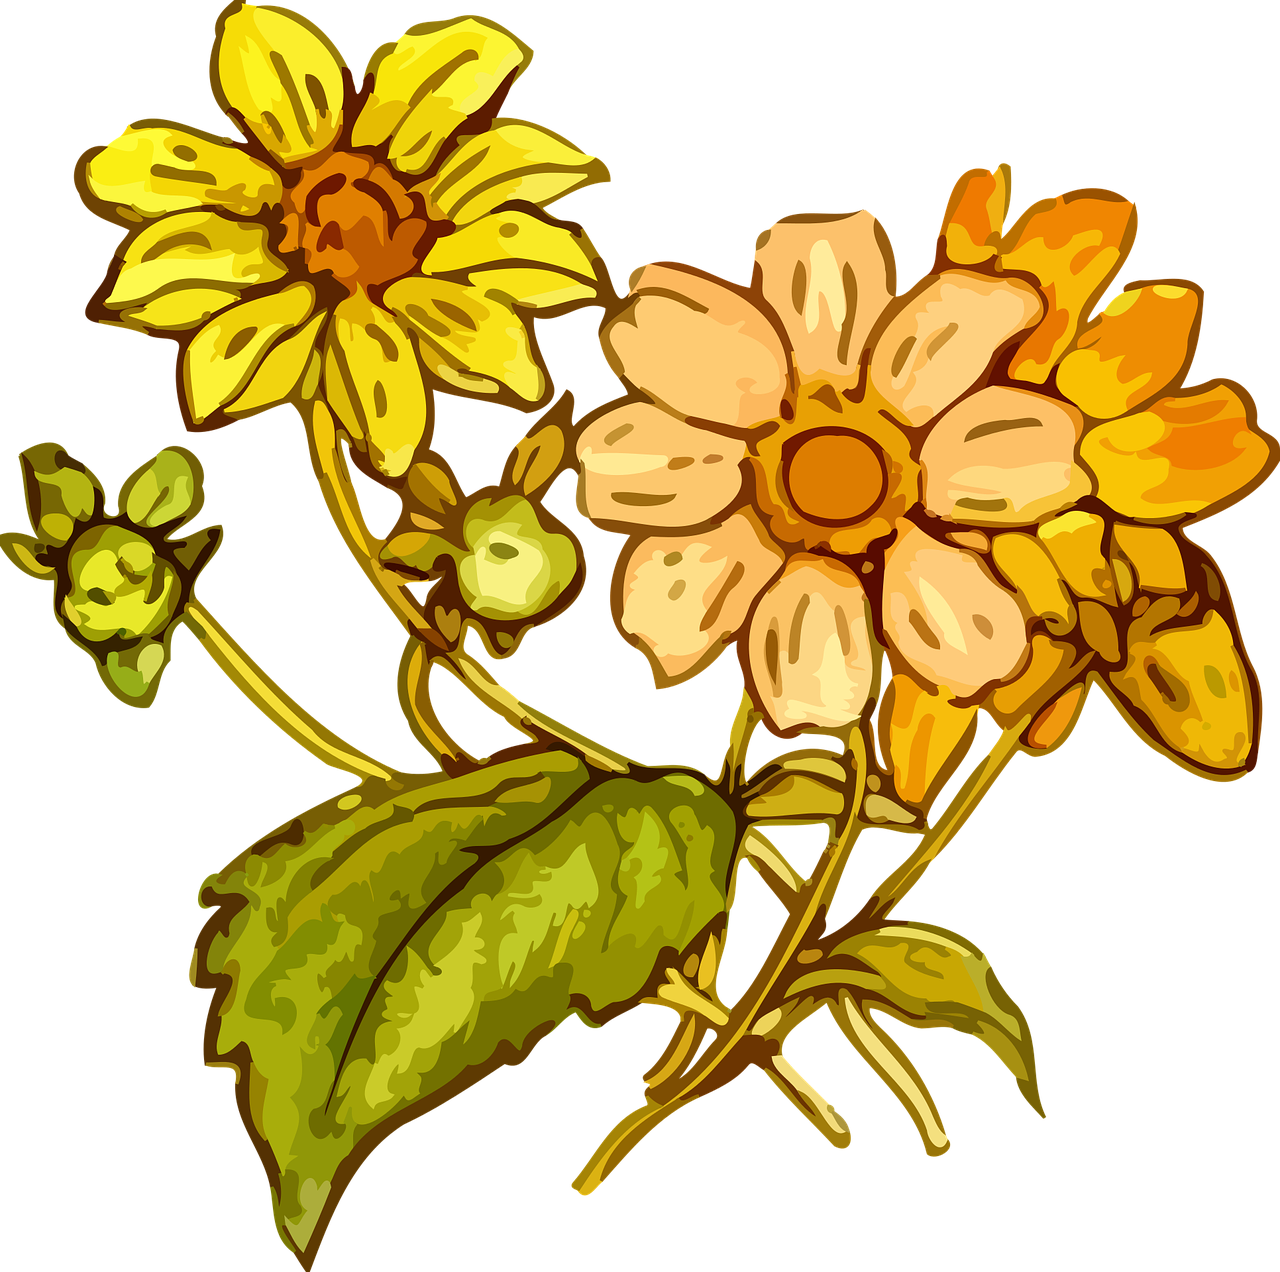 Wildflowers drawing - the best 2